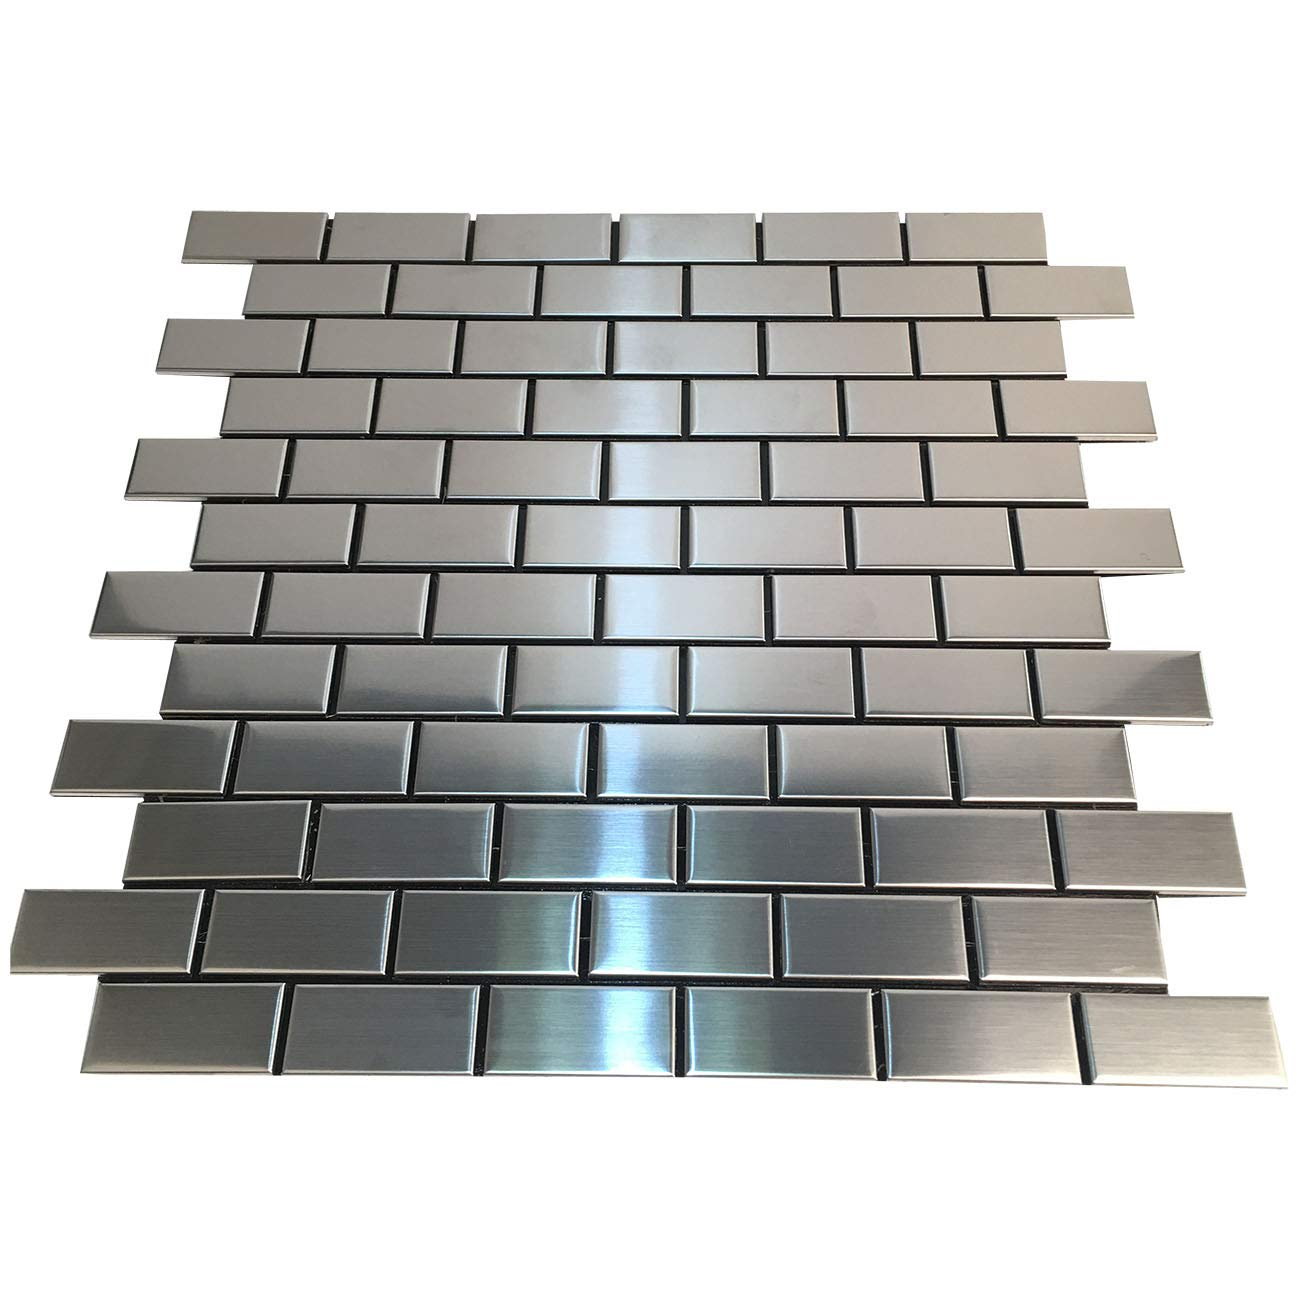 HomeyStyle Subway Stainless Steel Peel and Stick Tile Backsplash for Kitchen Bathroom Stove Self-Adhesive Metal Mosaic Tiles Wall Decor Sticker,5 Tiles x 12''x12'' by HomeyStyle (Image #2)